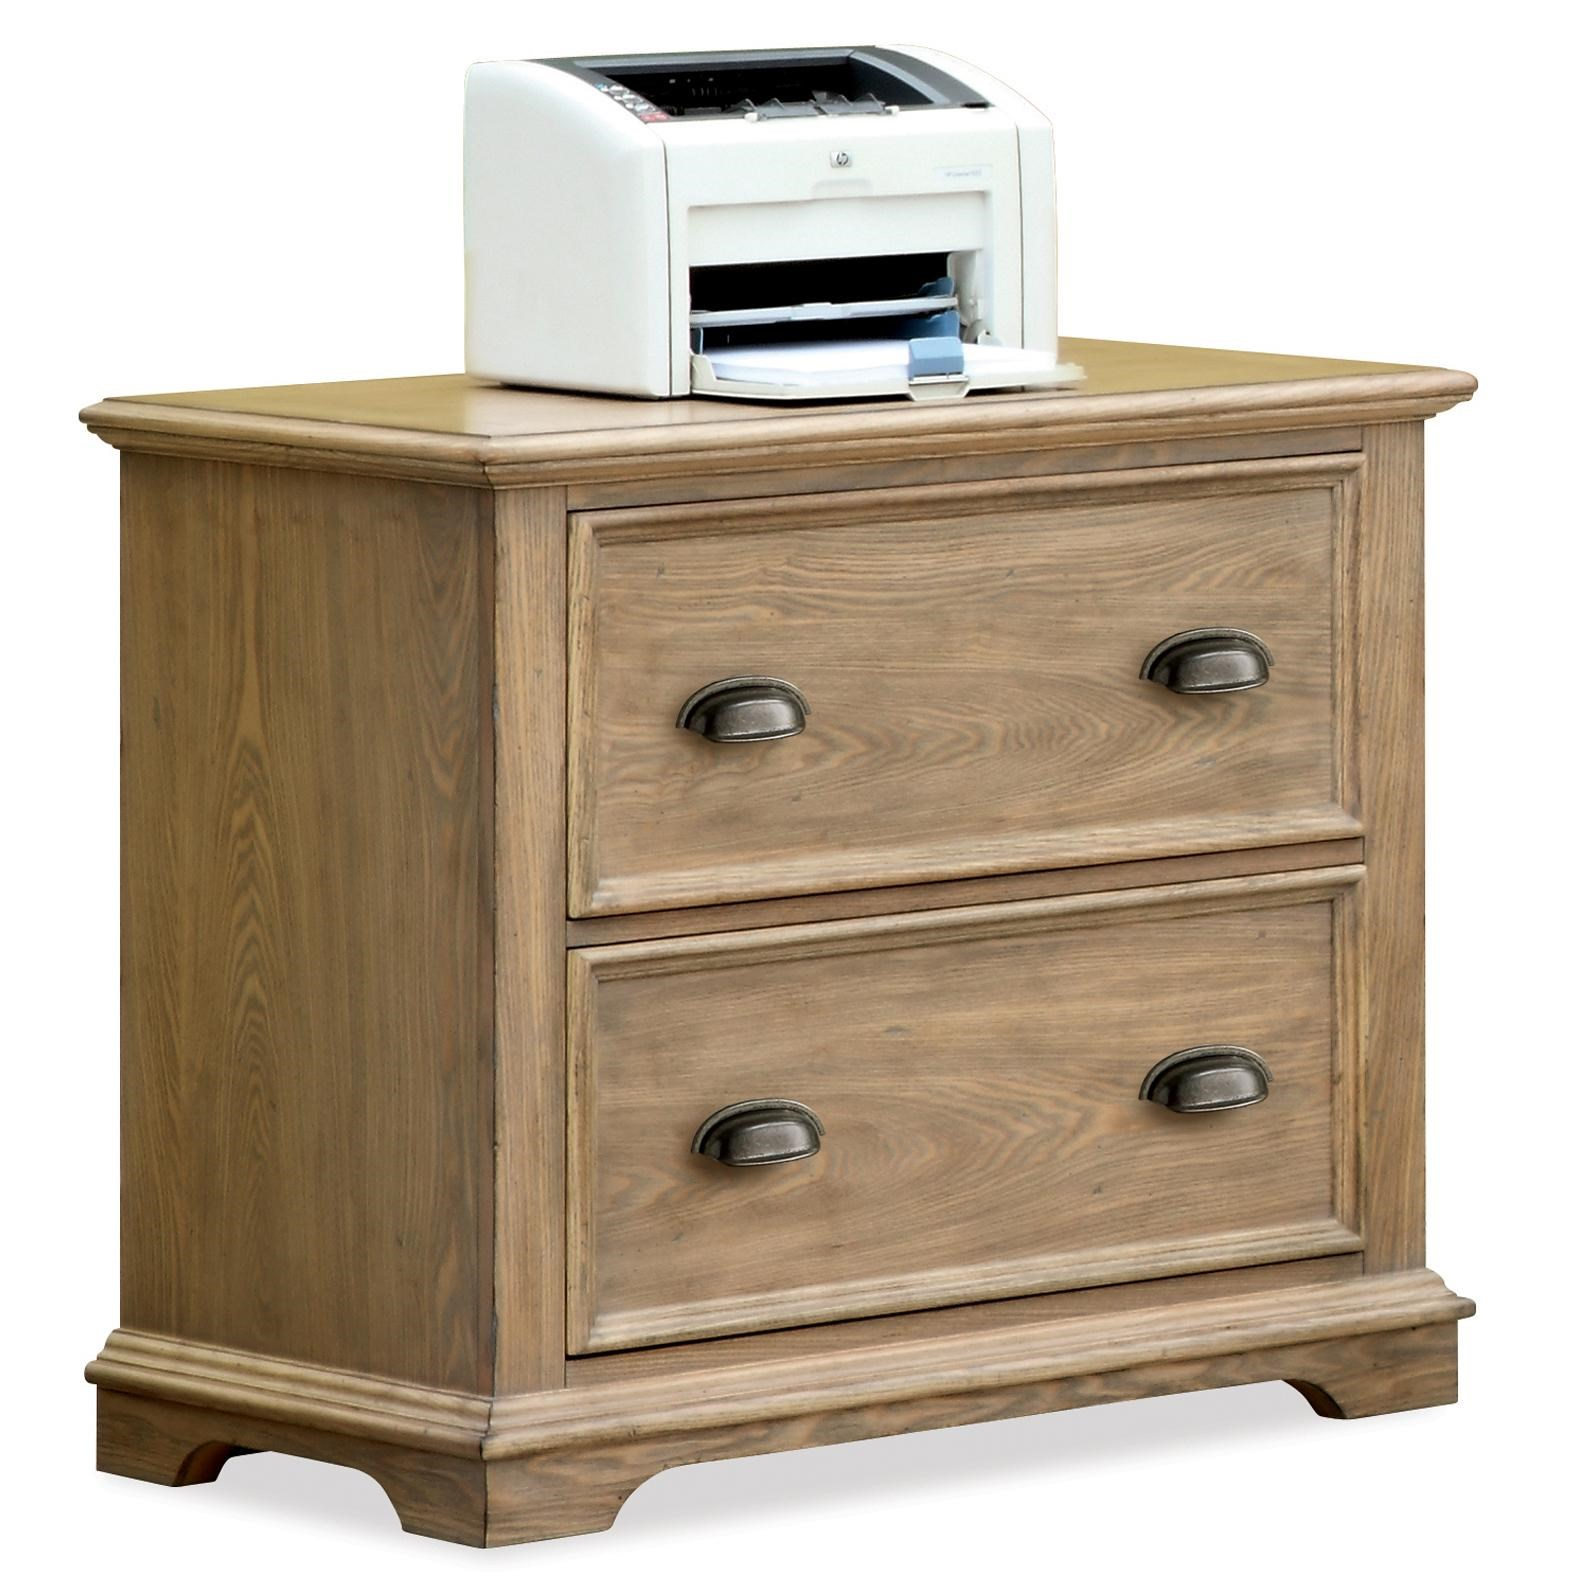 Riverside Furniture Coventry 32434 Lateral File Cabinet With 2 Drawers |  Hudsonu0027s Furniture | Lateral File